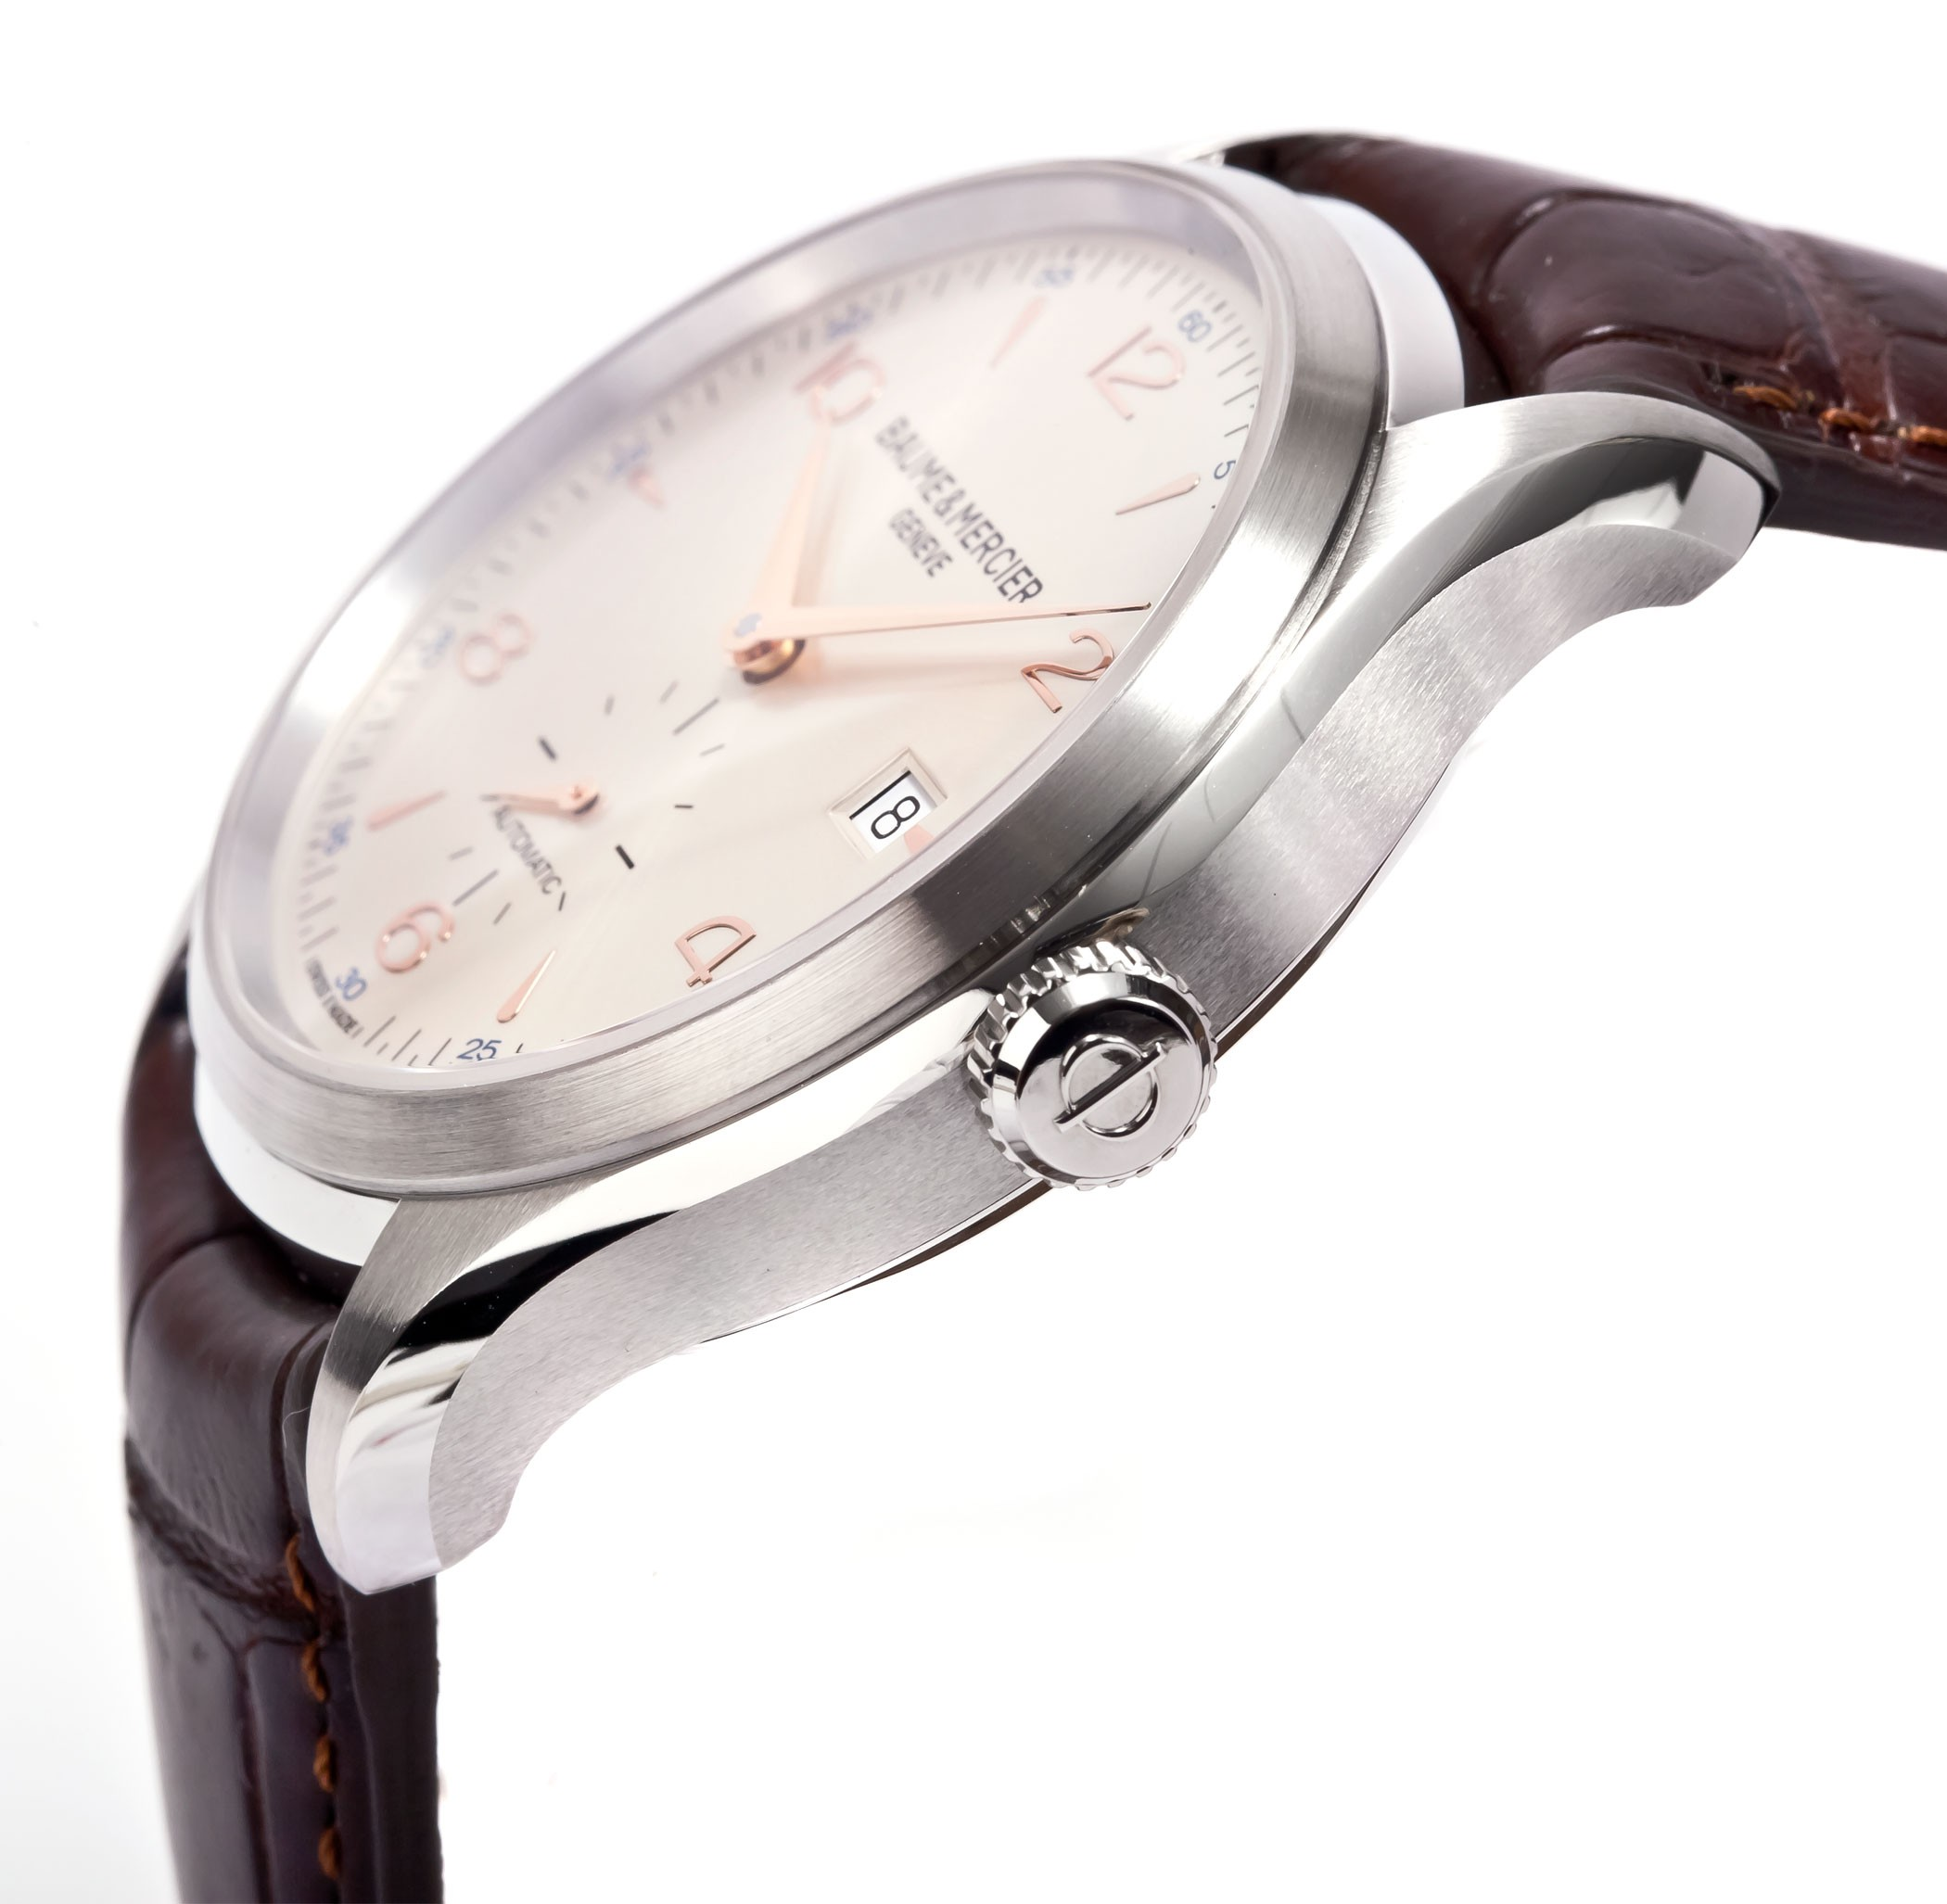 mondaine frederique watchmakers wearable reveal simple direct smartwatch watch a alpina article c watches horological orig pcworld gadgety response swiss to makers constant the luxury and